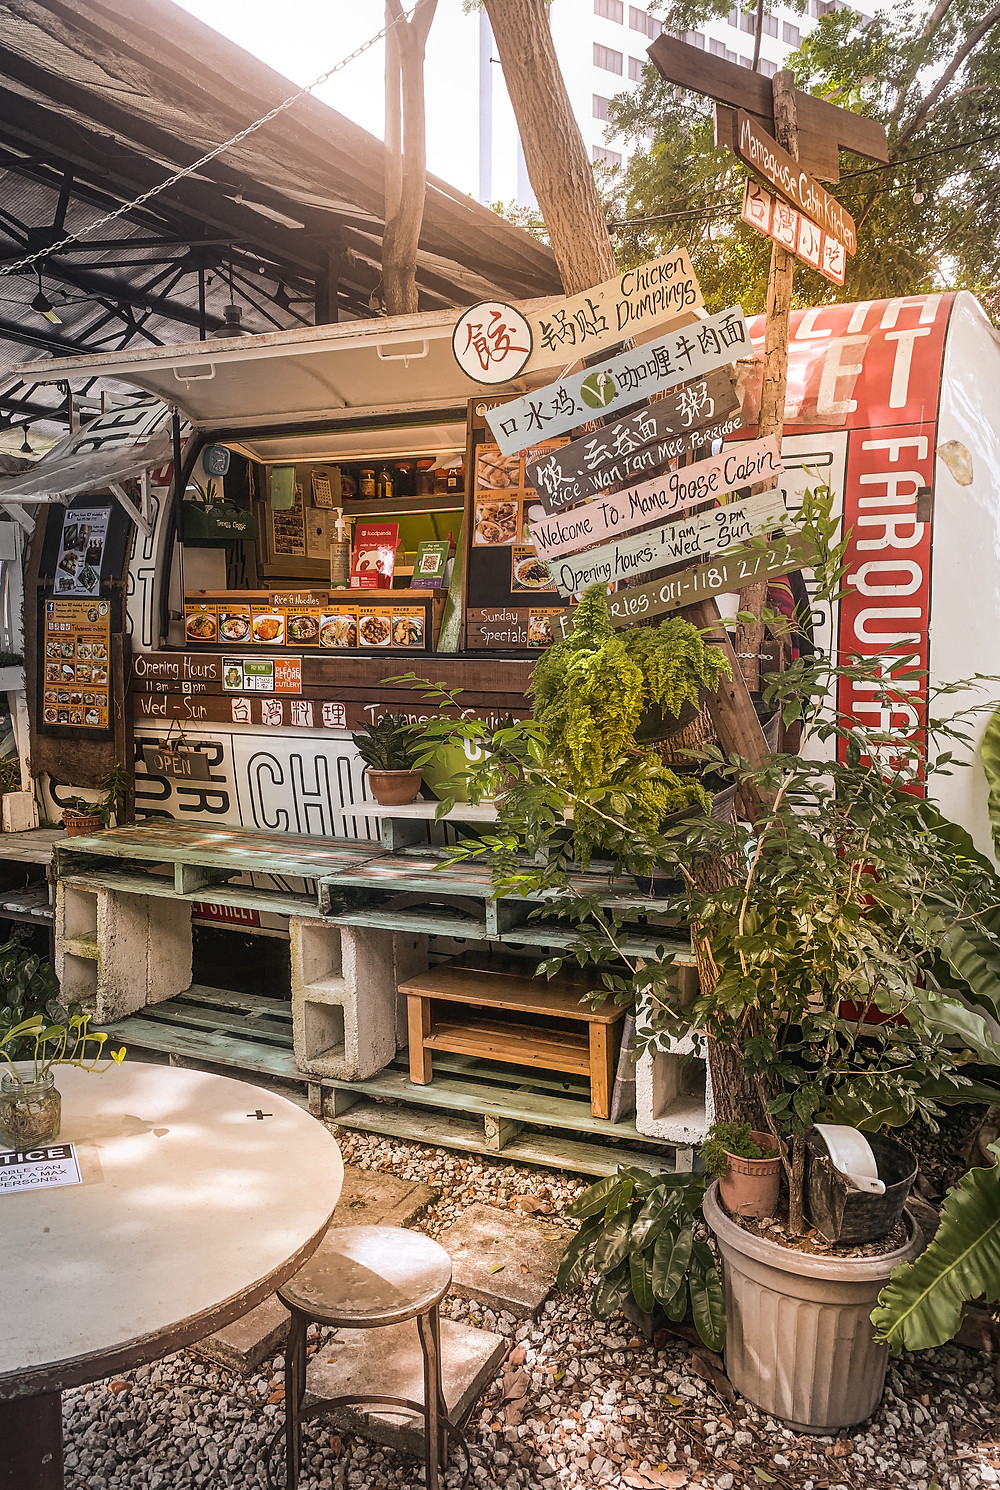 Rustic wooden menu signs, outdoor seating, cabin kitchen facade of Mama Goose Cabin, Hin Bus Depot, RollingBear Travels blog.